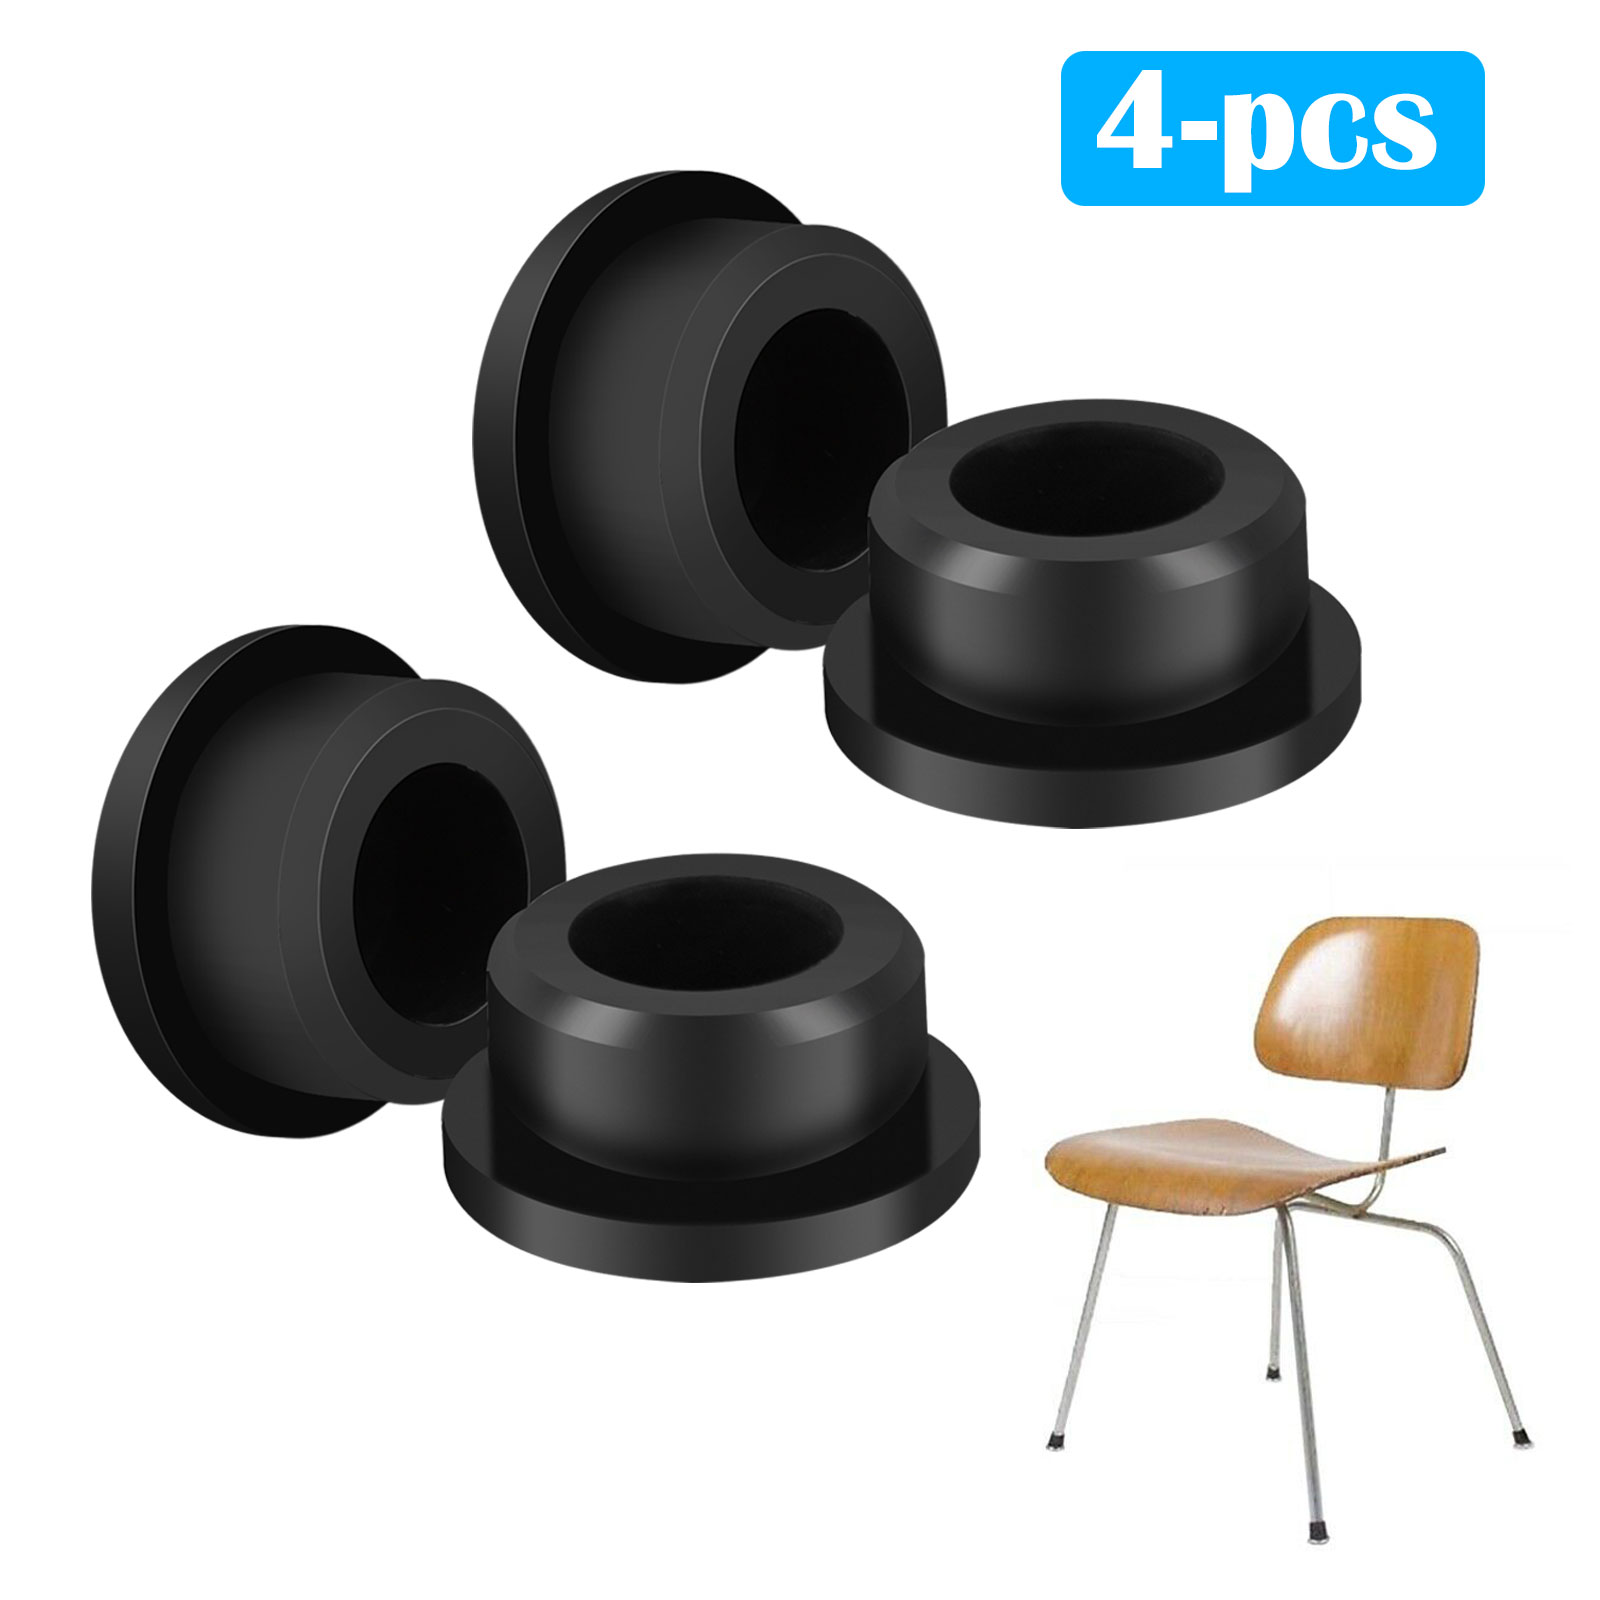 4pcs Chair Glides Replacement Fit For Eames Eiffel Style Furniture Feet Black